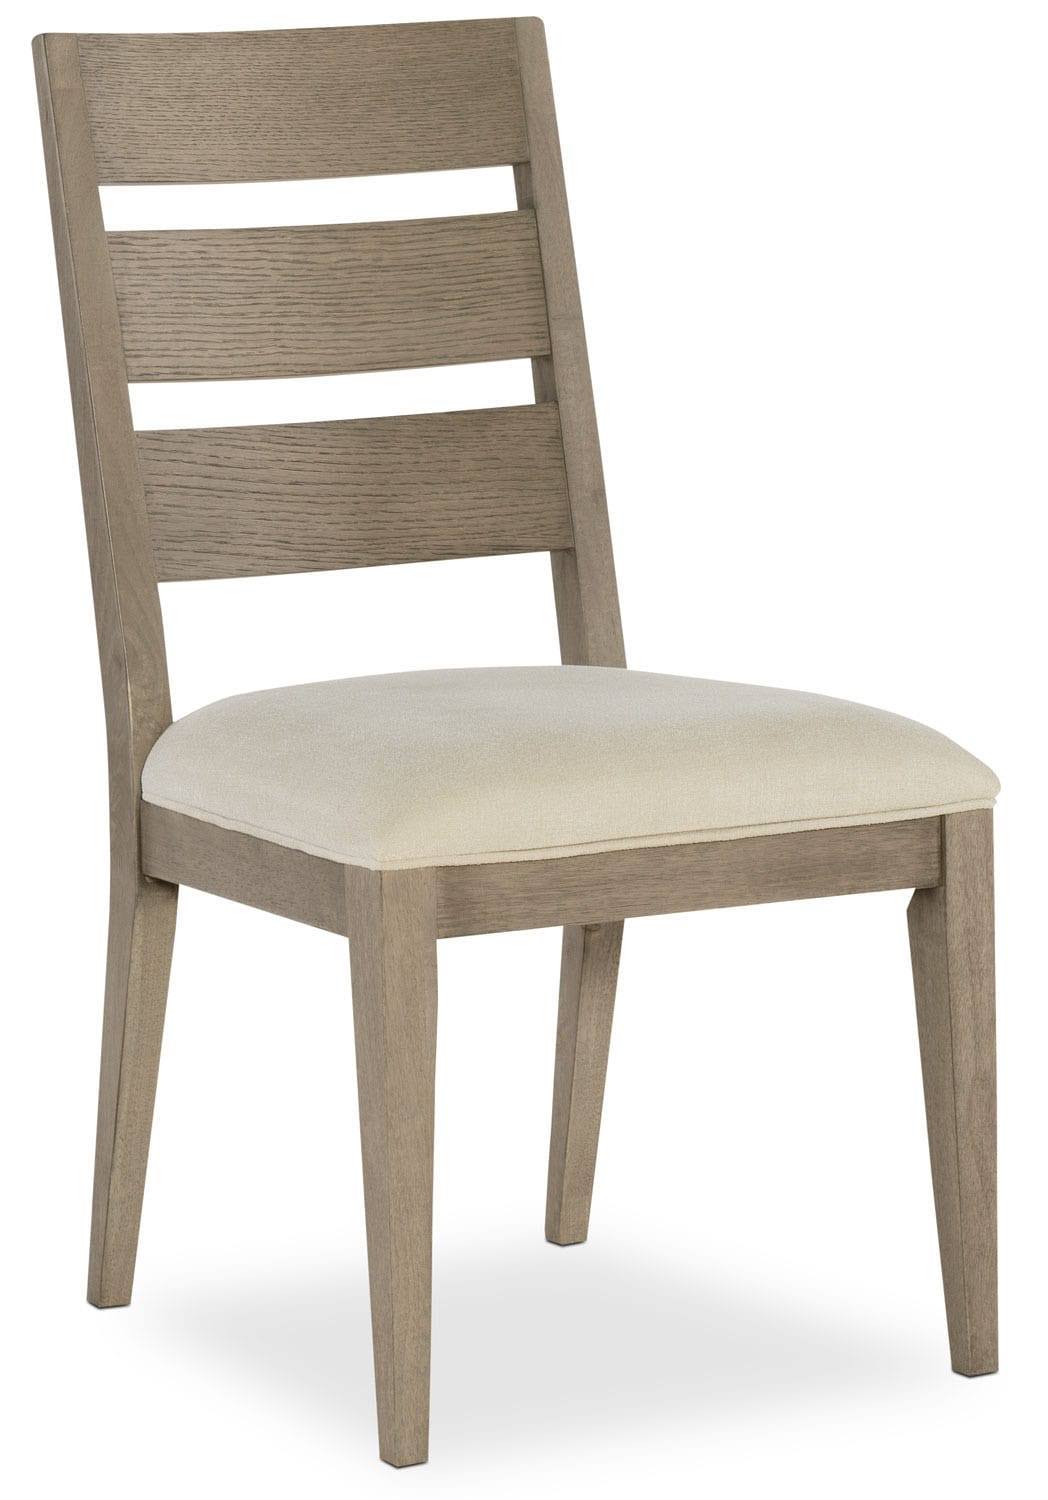 Rachael Ray Highline Side Chair - Greige